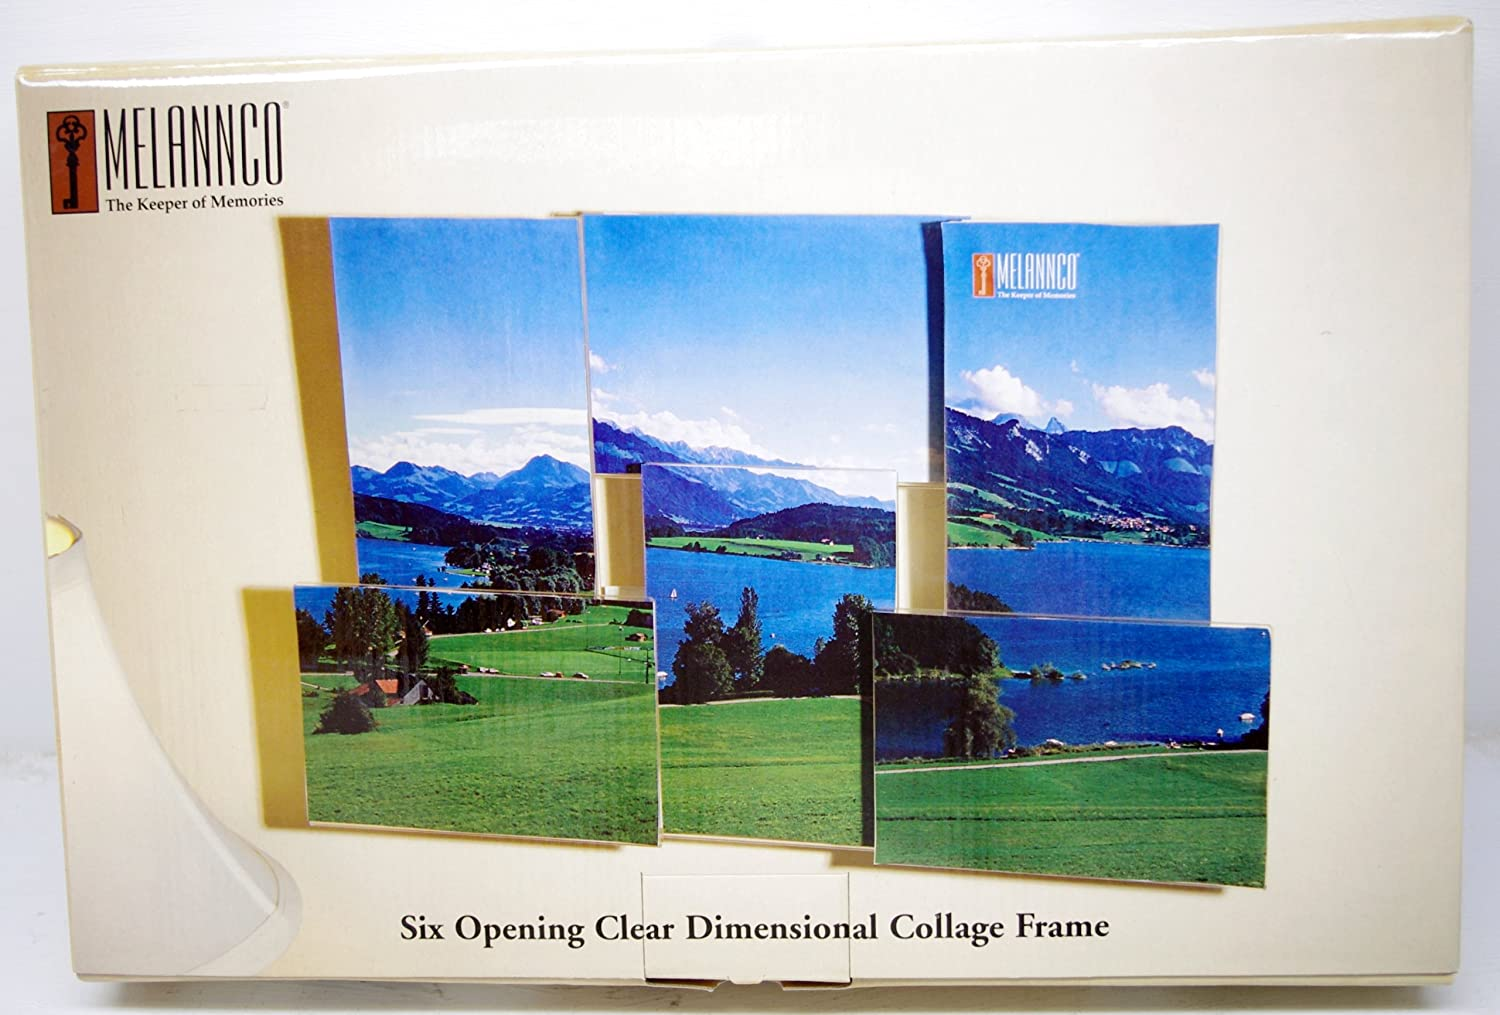 Amazon.com - Melannco Six Opening Clear Dimensional Collage Frame -